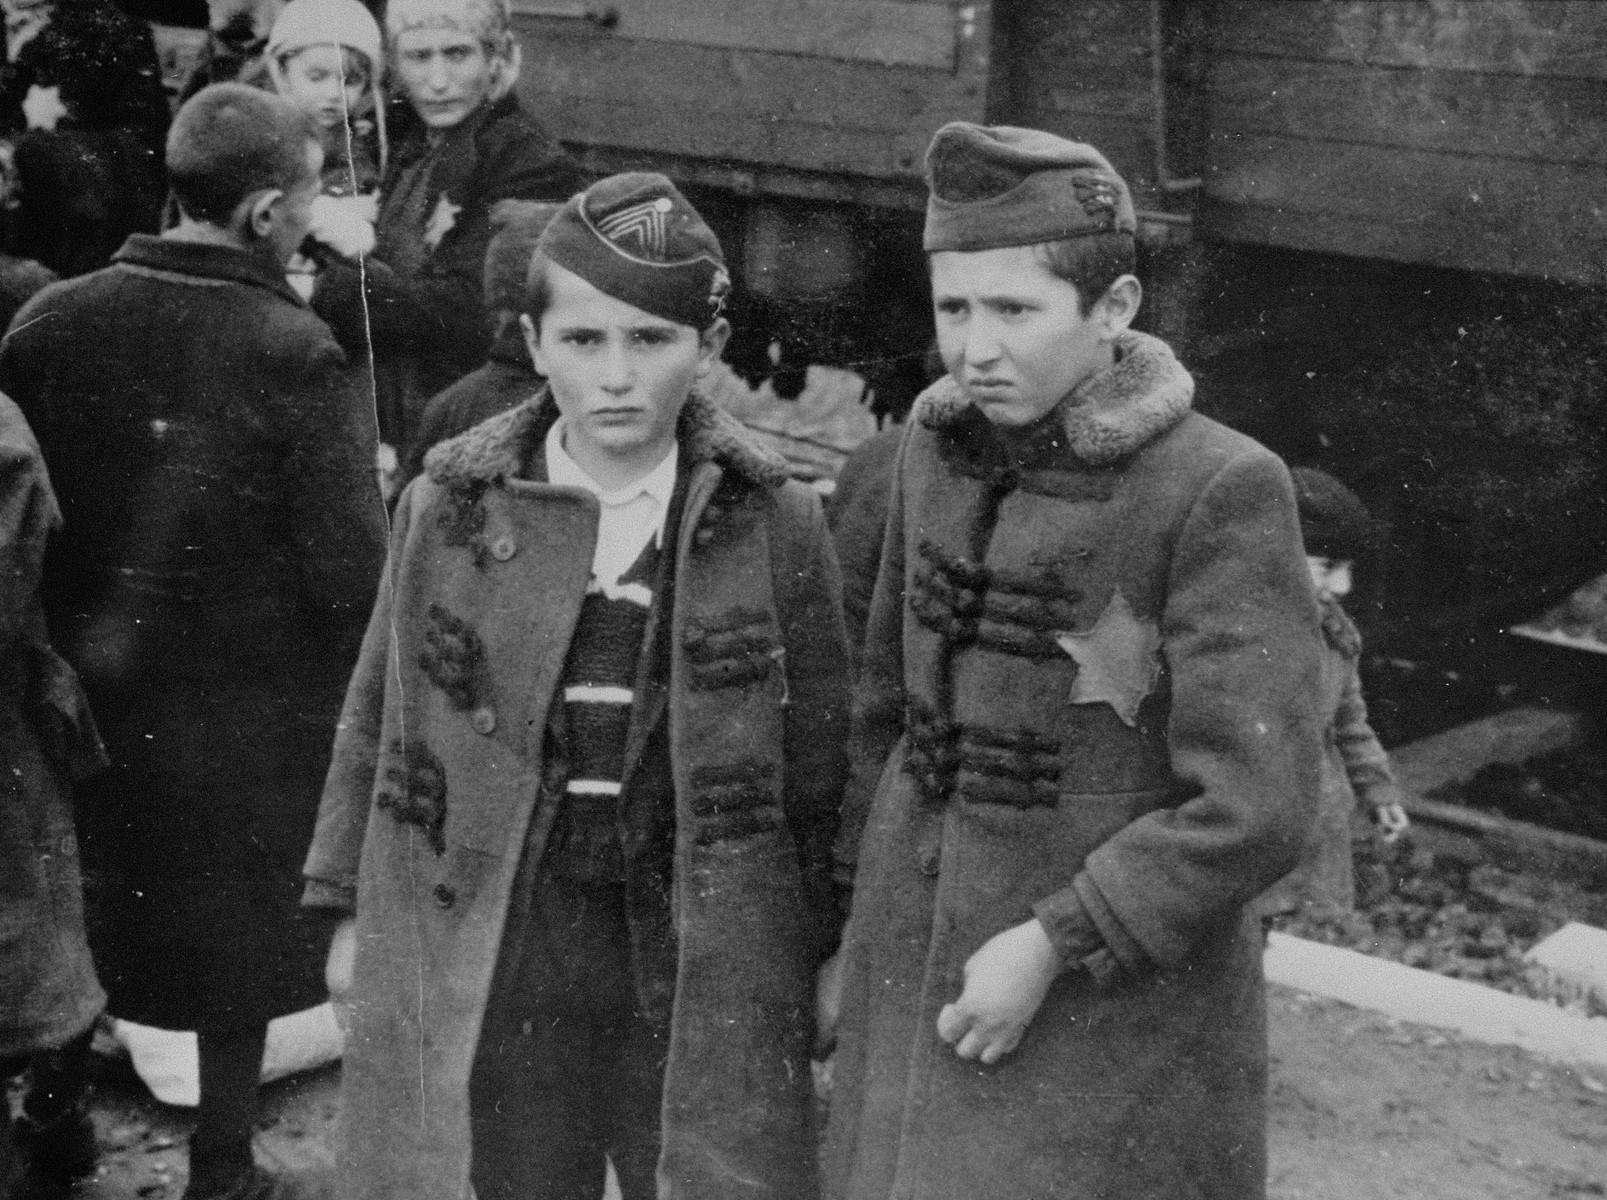 Jewish brothers from Subcarpathian Rus await selection on the ramp at Auschwitz-Birkenau.  Pictured are Israel and Zelig Jacob, ages nine and eleven.  They were gassed shortly after arrival.